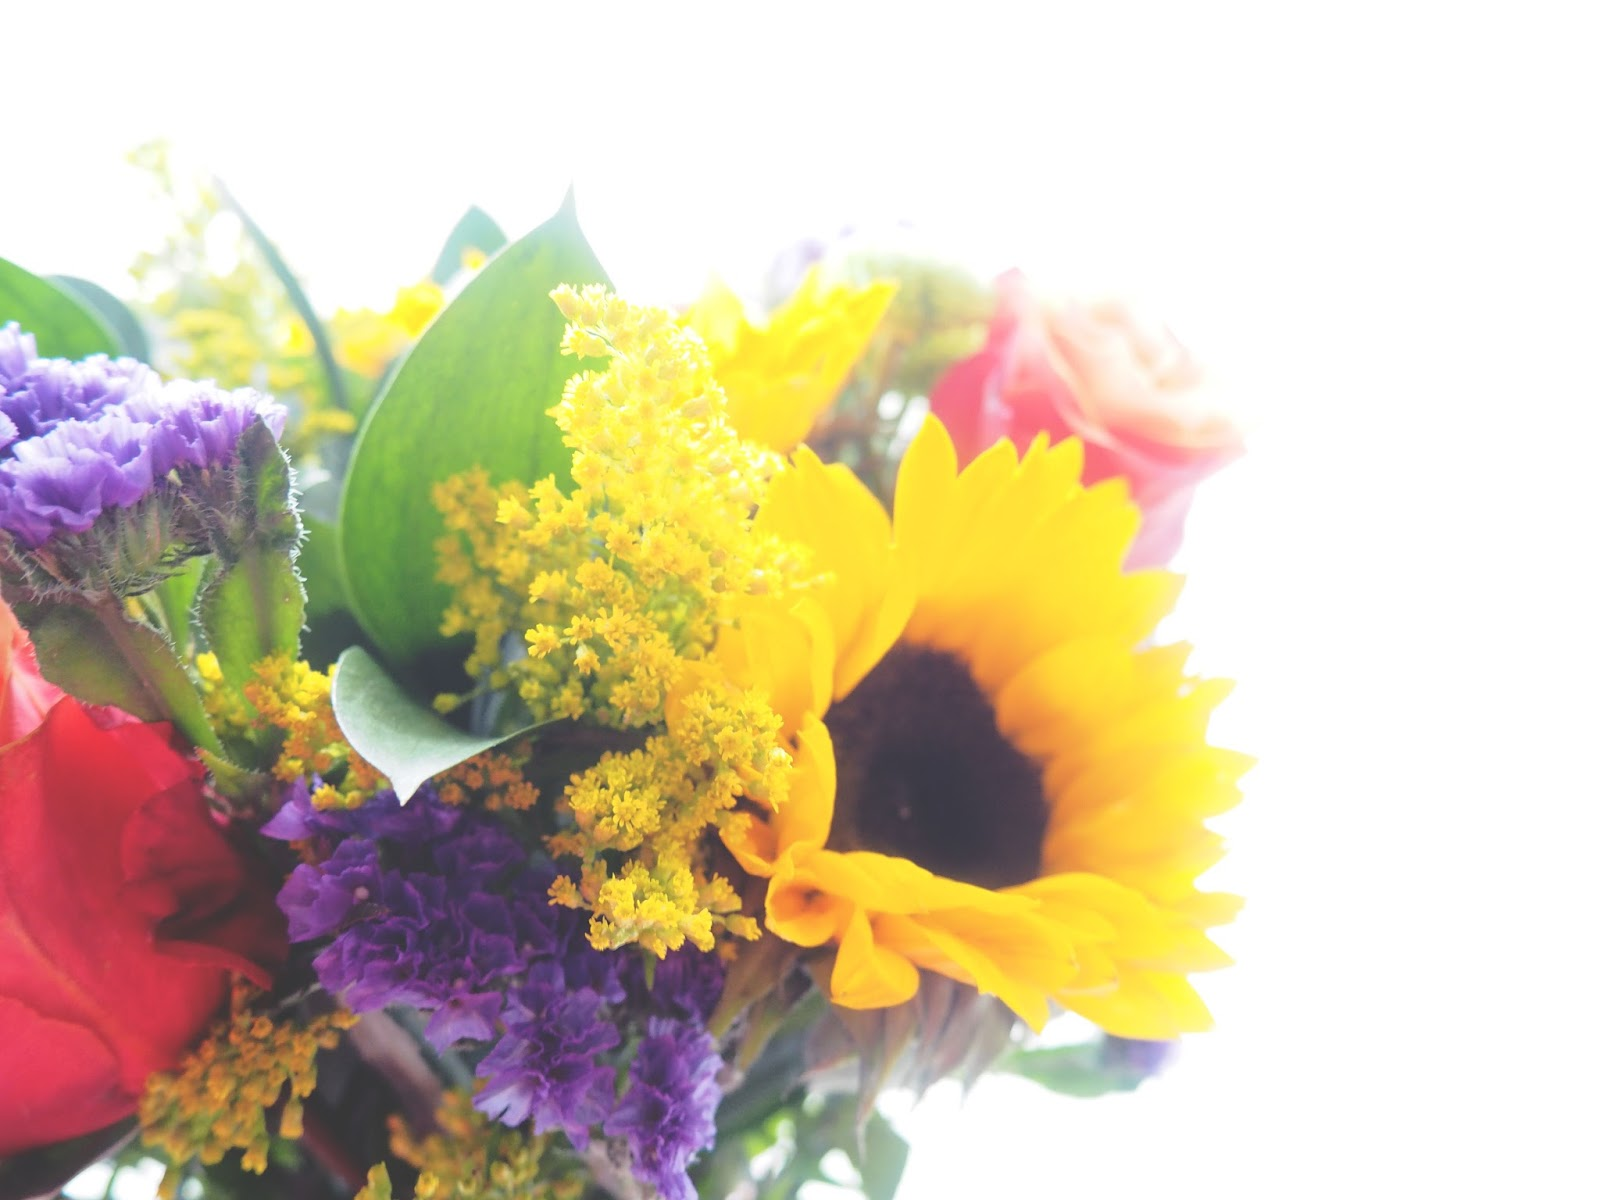 Debenhams Flowers Autumn Sun Bouquet Review and Discount Code